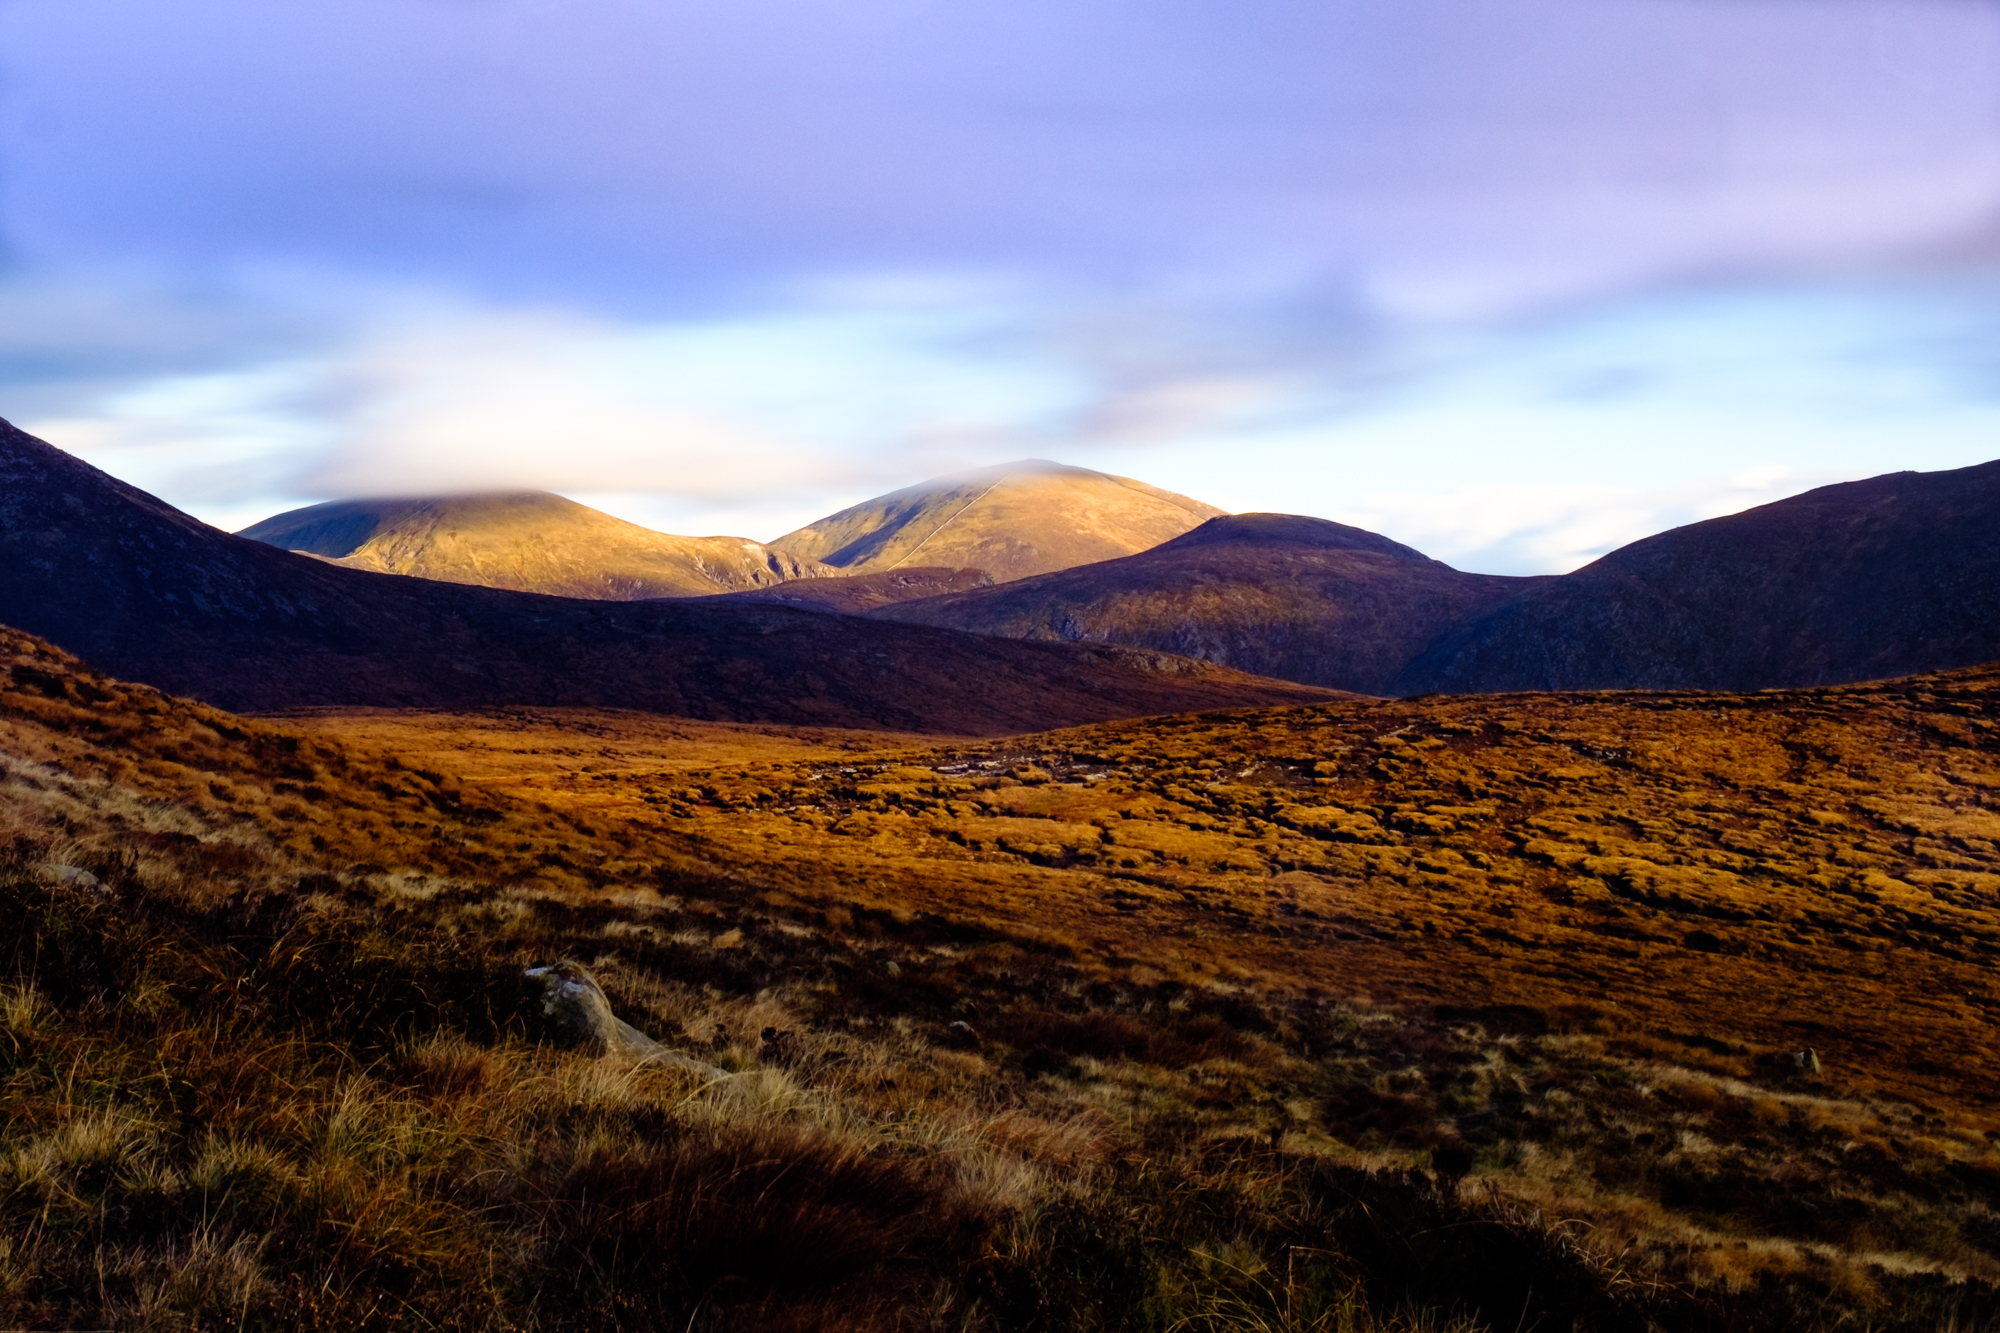 Capturing The Spirit Of The Mountains, My Hiking Adventures Across Ireland